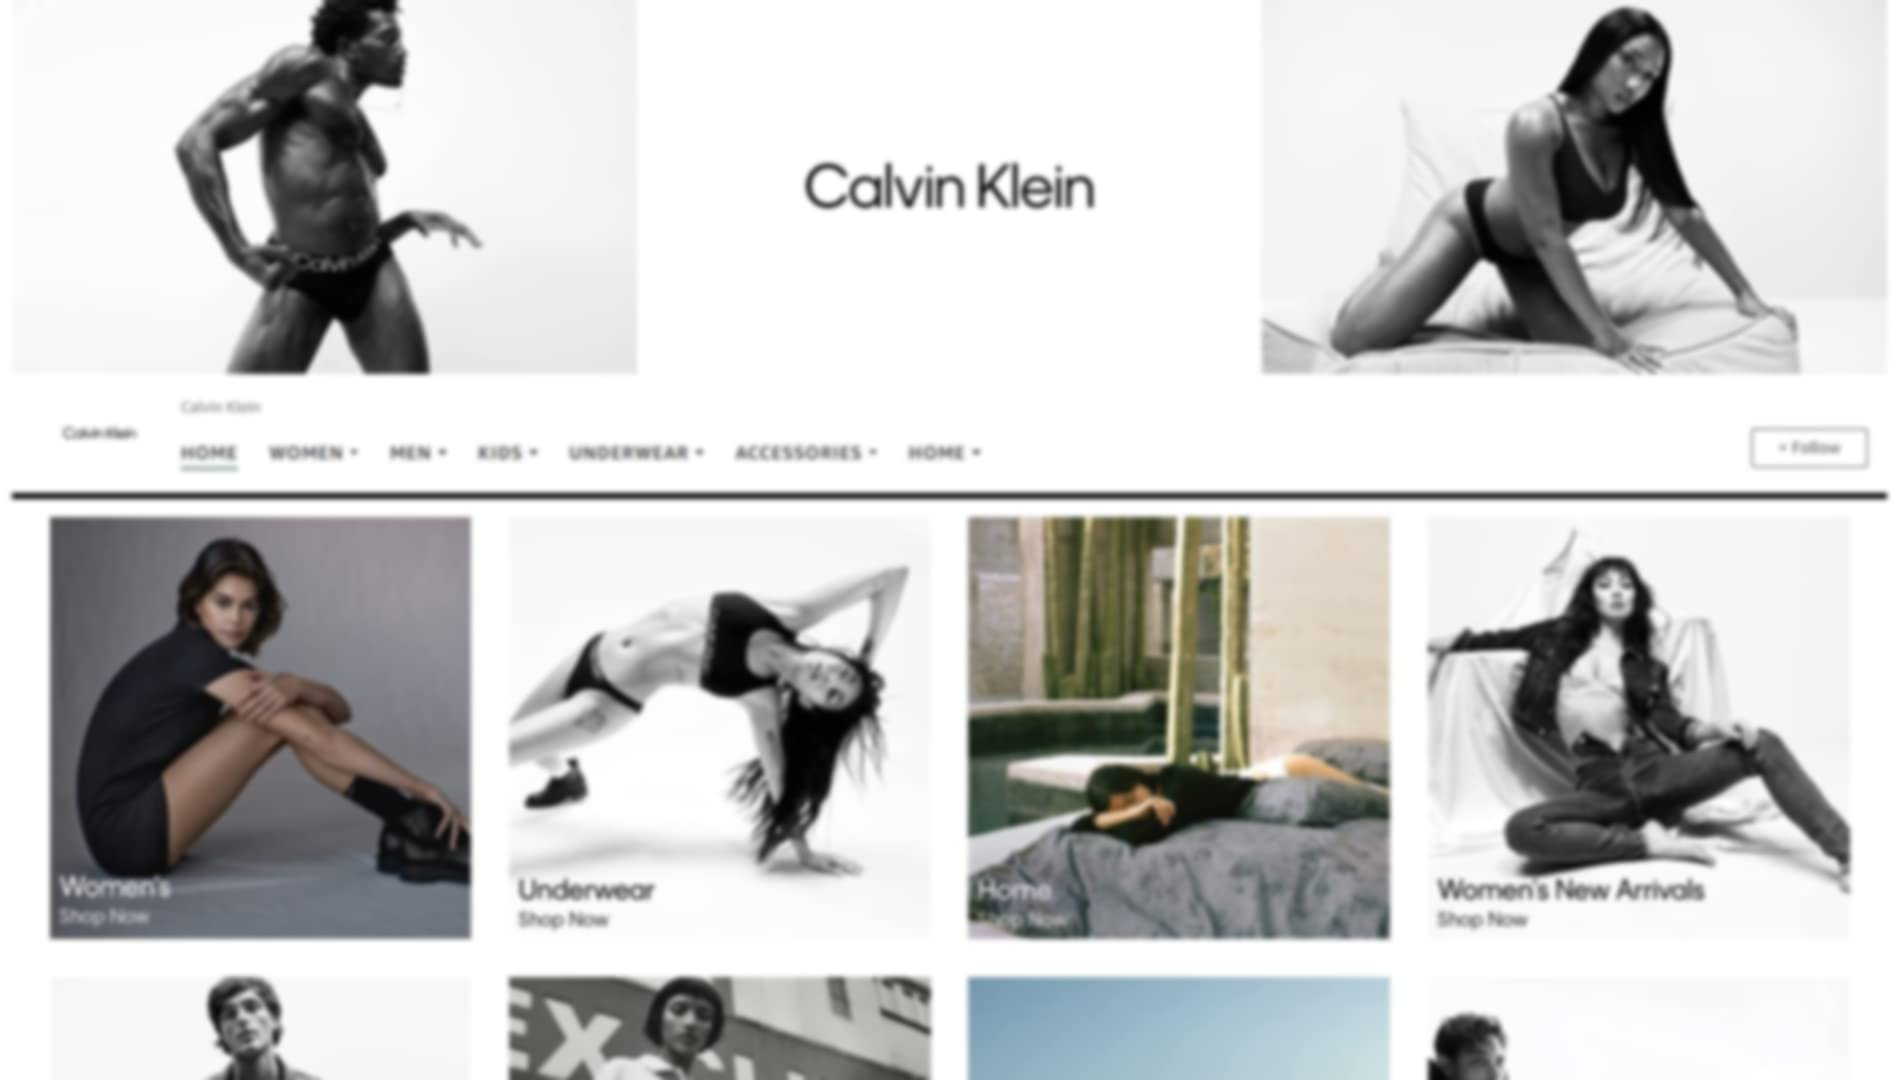 Store page of Calvin Klein  on amazon.com